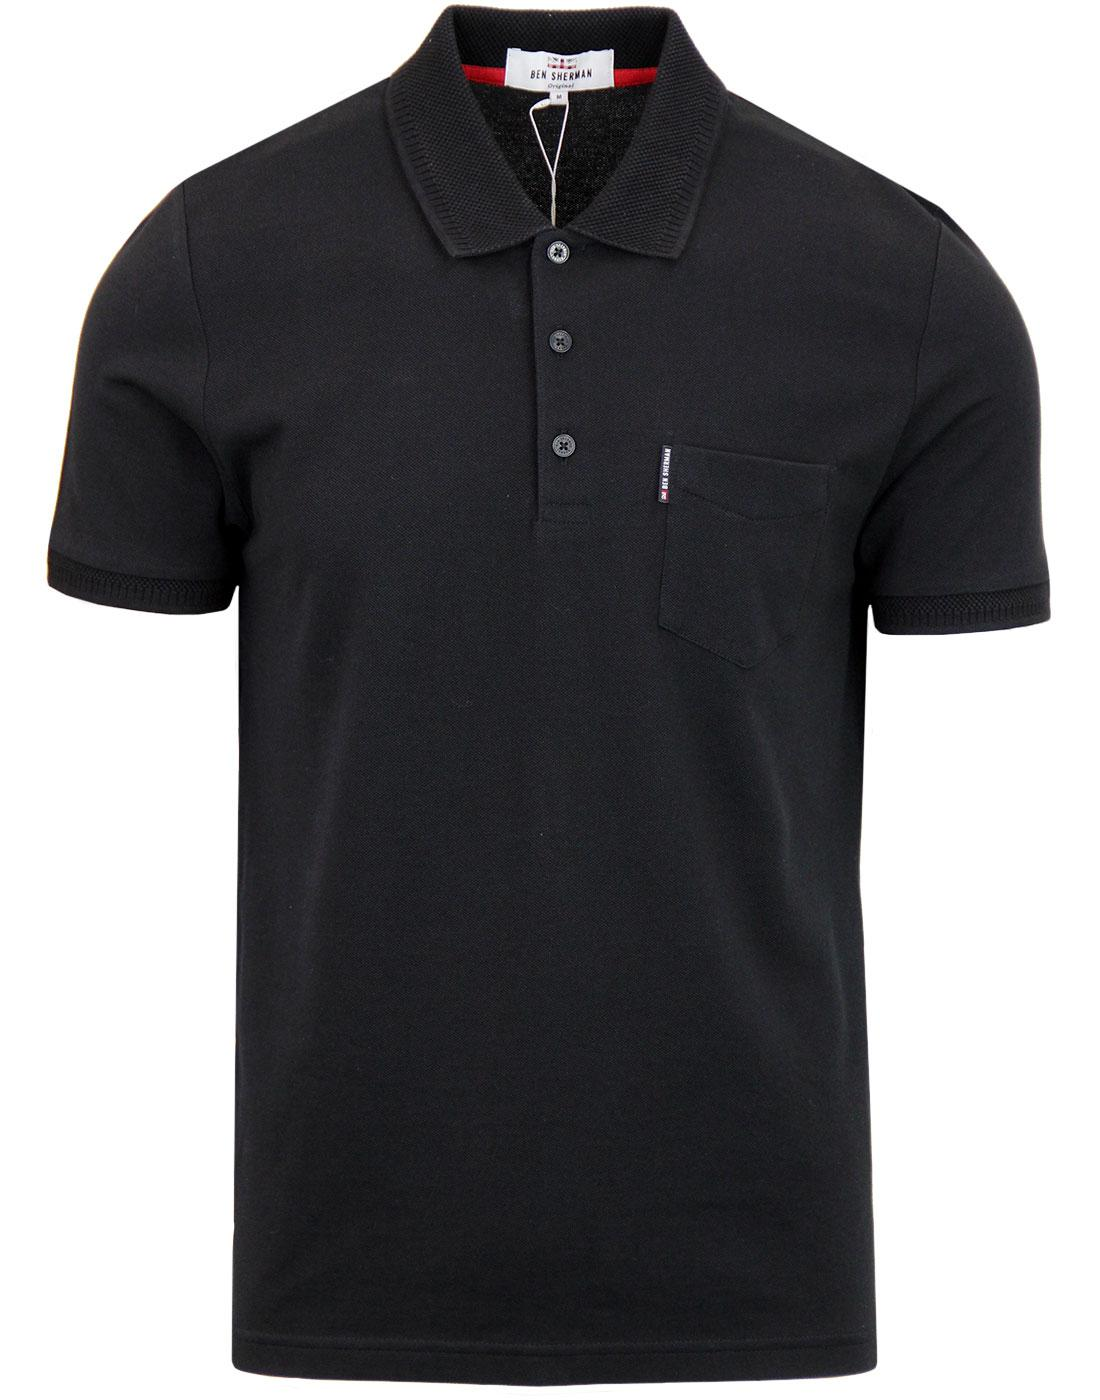 BEN SHERMAN Honeycomb Jacquard Collar Pique Polo B